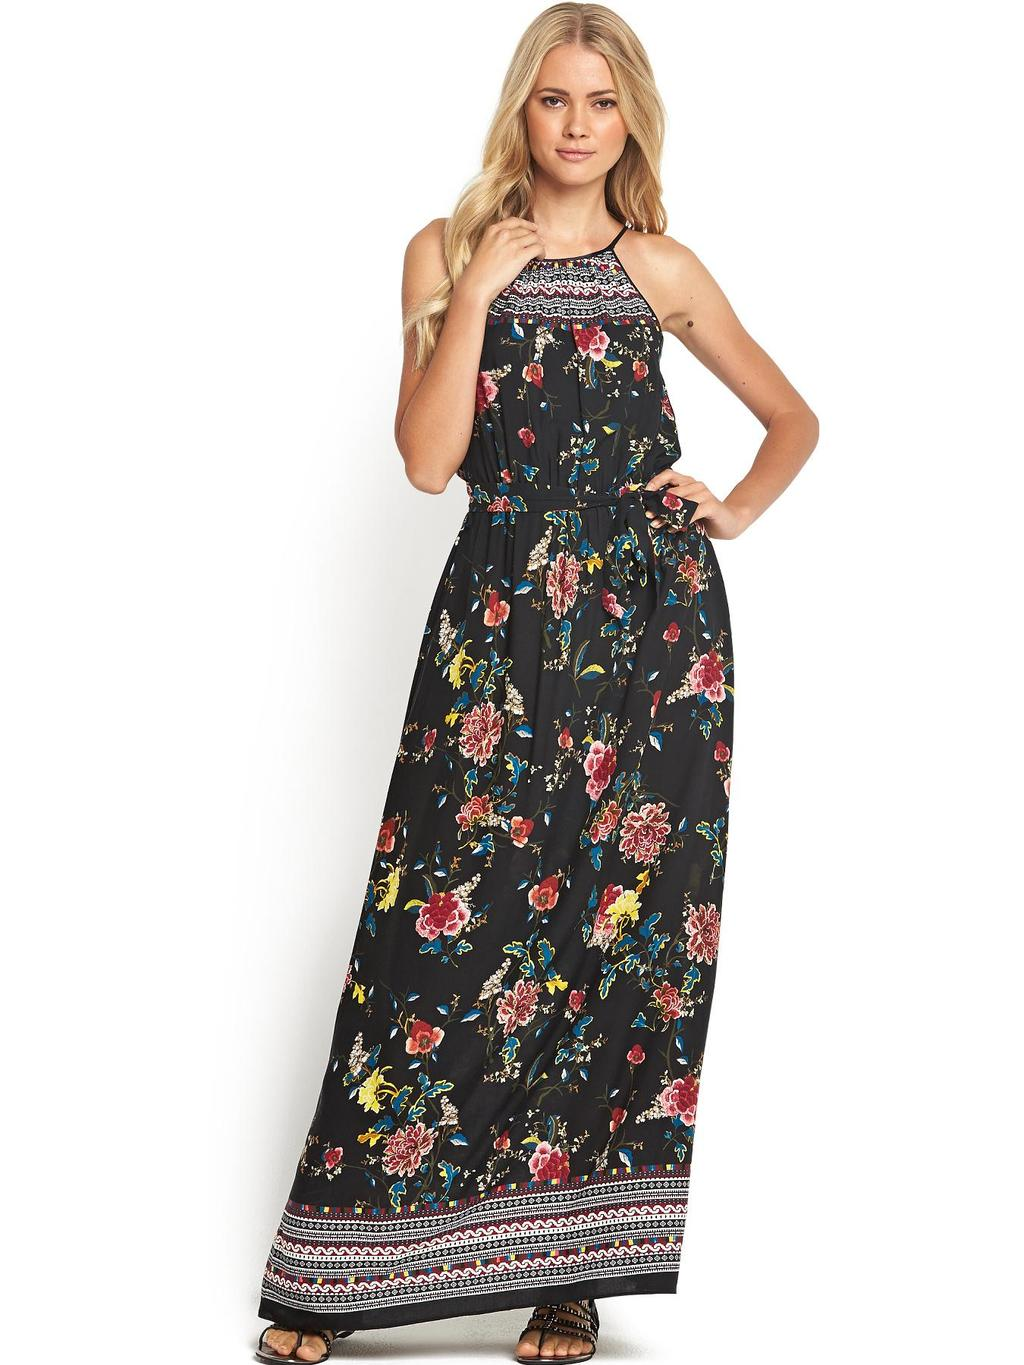 Aztec Floral Halter Maxi Dress - fit: fitted at waist; sleeve style: sleeveless; style: maxi dress; waist detail: belted waist/tie at waist/drawstring; occasions: casual, evening; length: floor length; fibres: viscose/rayon - 100%; neckline: crew; predominant colour: multicoloured; sleeve length: sleeveless; pattern type: fabric; pattern size: standard; pattern: florals; texture group: other - light to midweight; season: s/s 2014; multicoloured: multicoloured